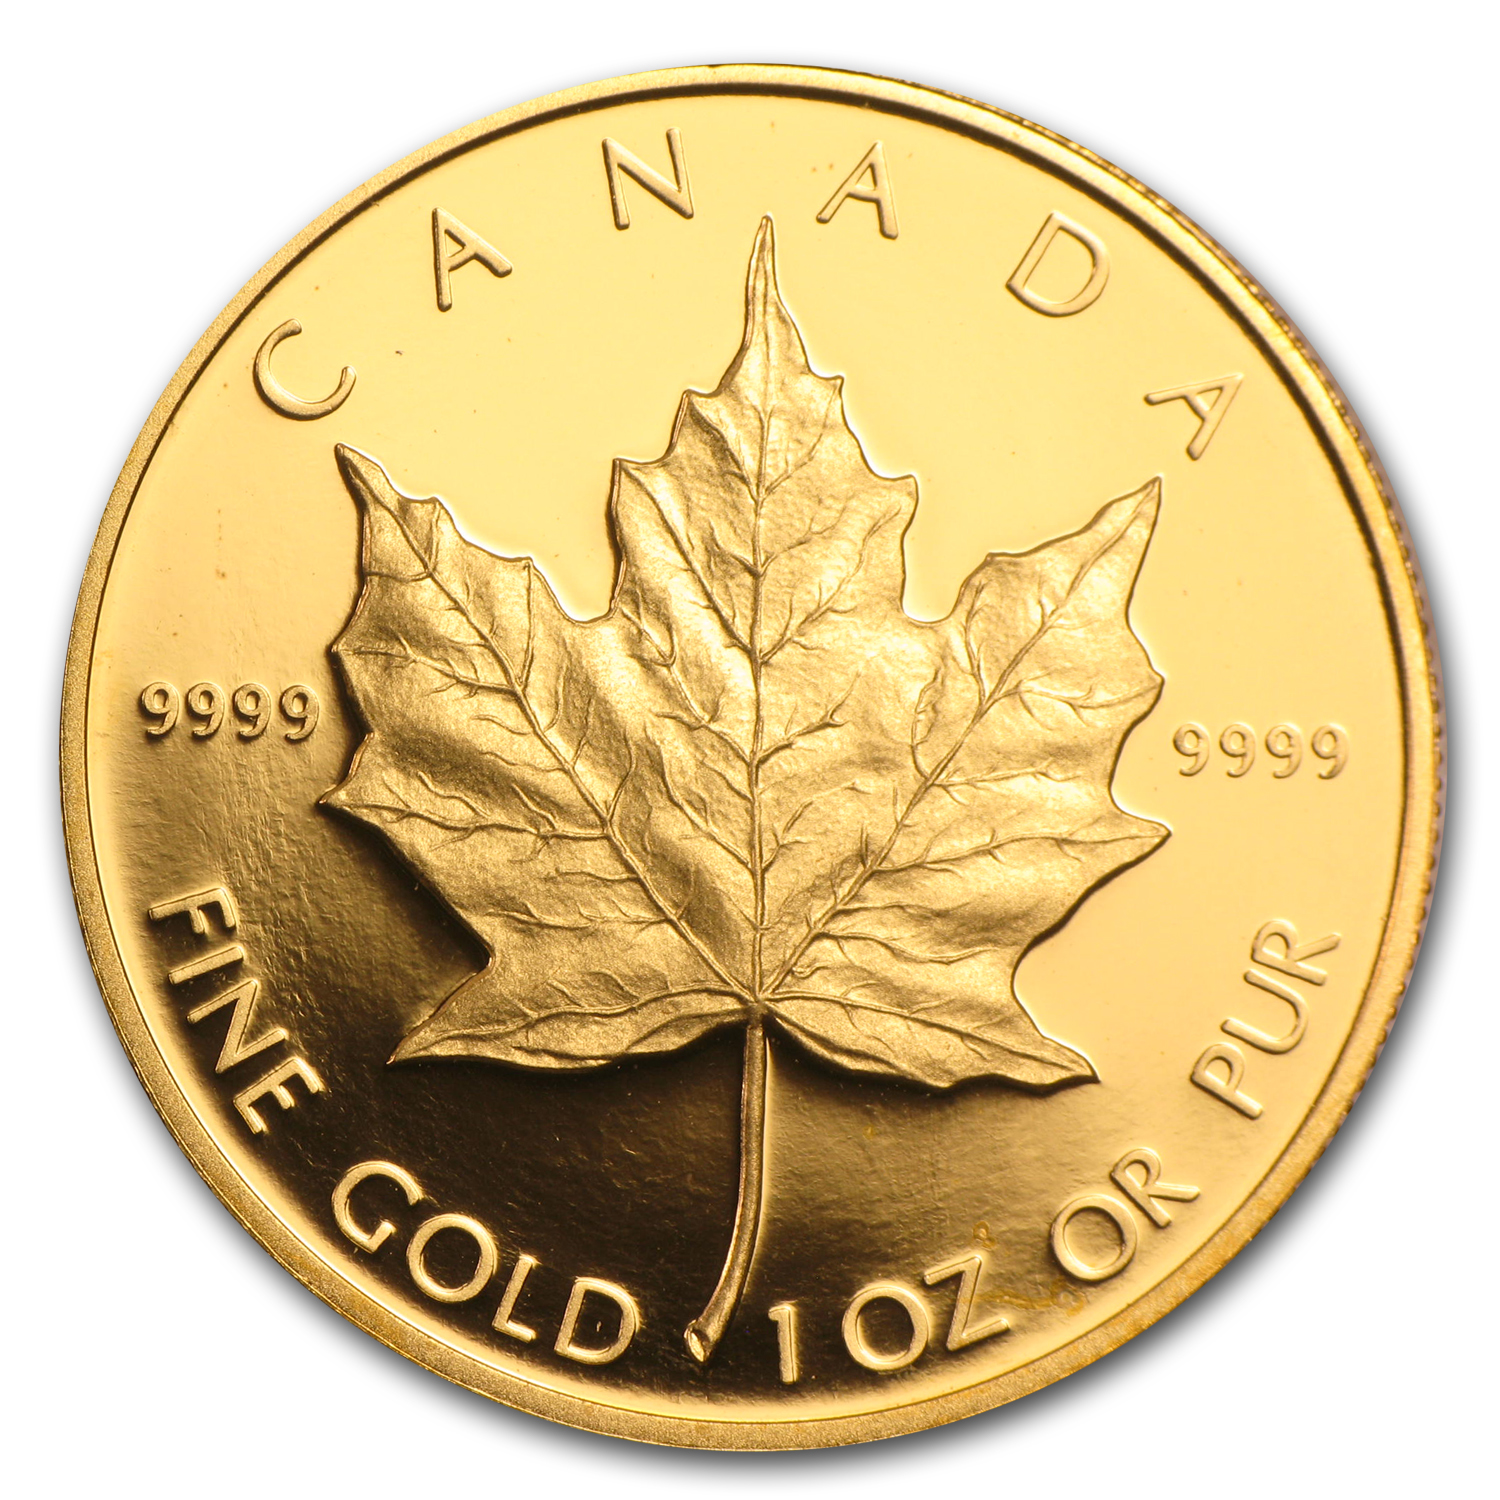 1989 1 oz Proof Gold Canadian Maple Leaf (W/Box & Coa)